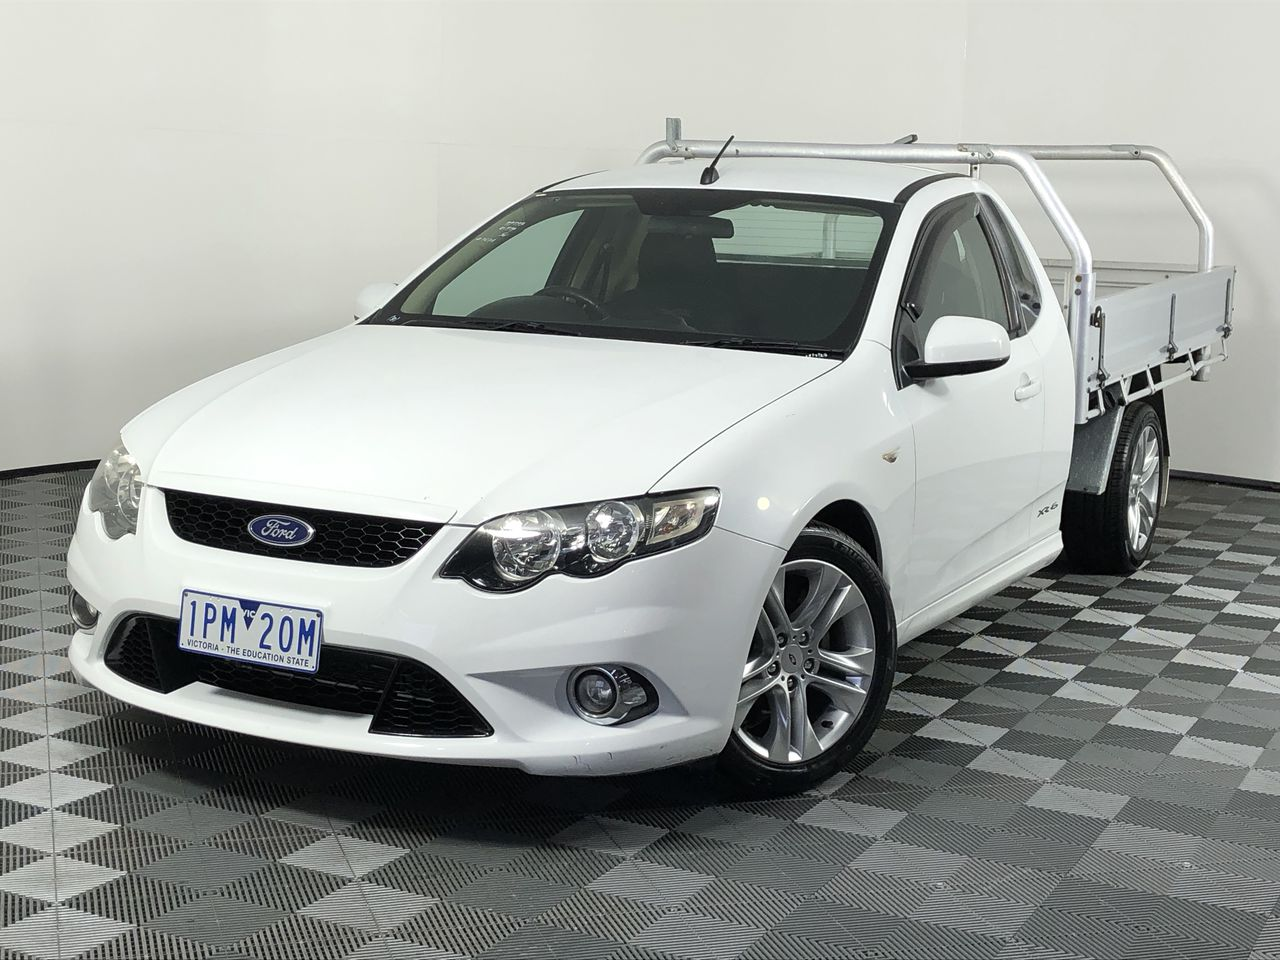 au xr6 ute for sale | Graysonline